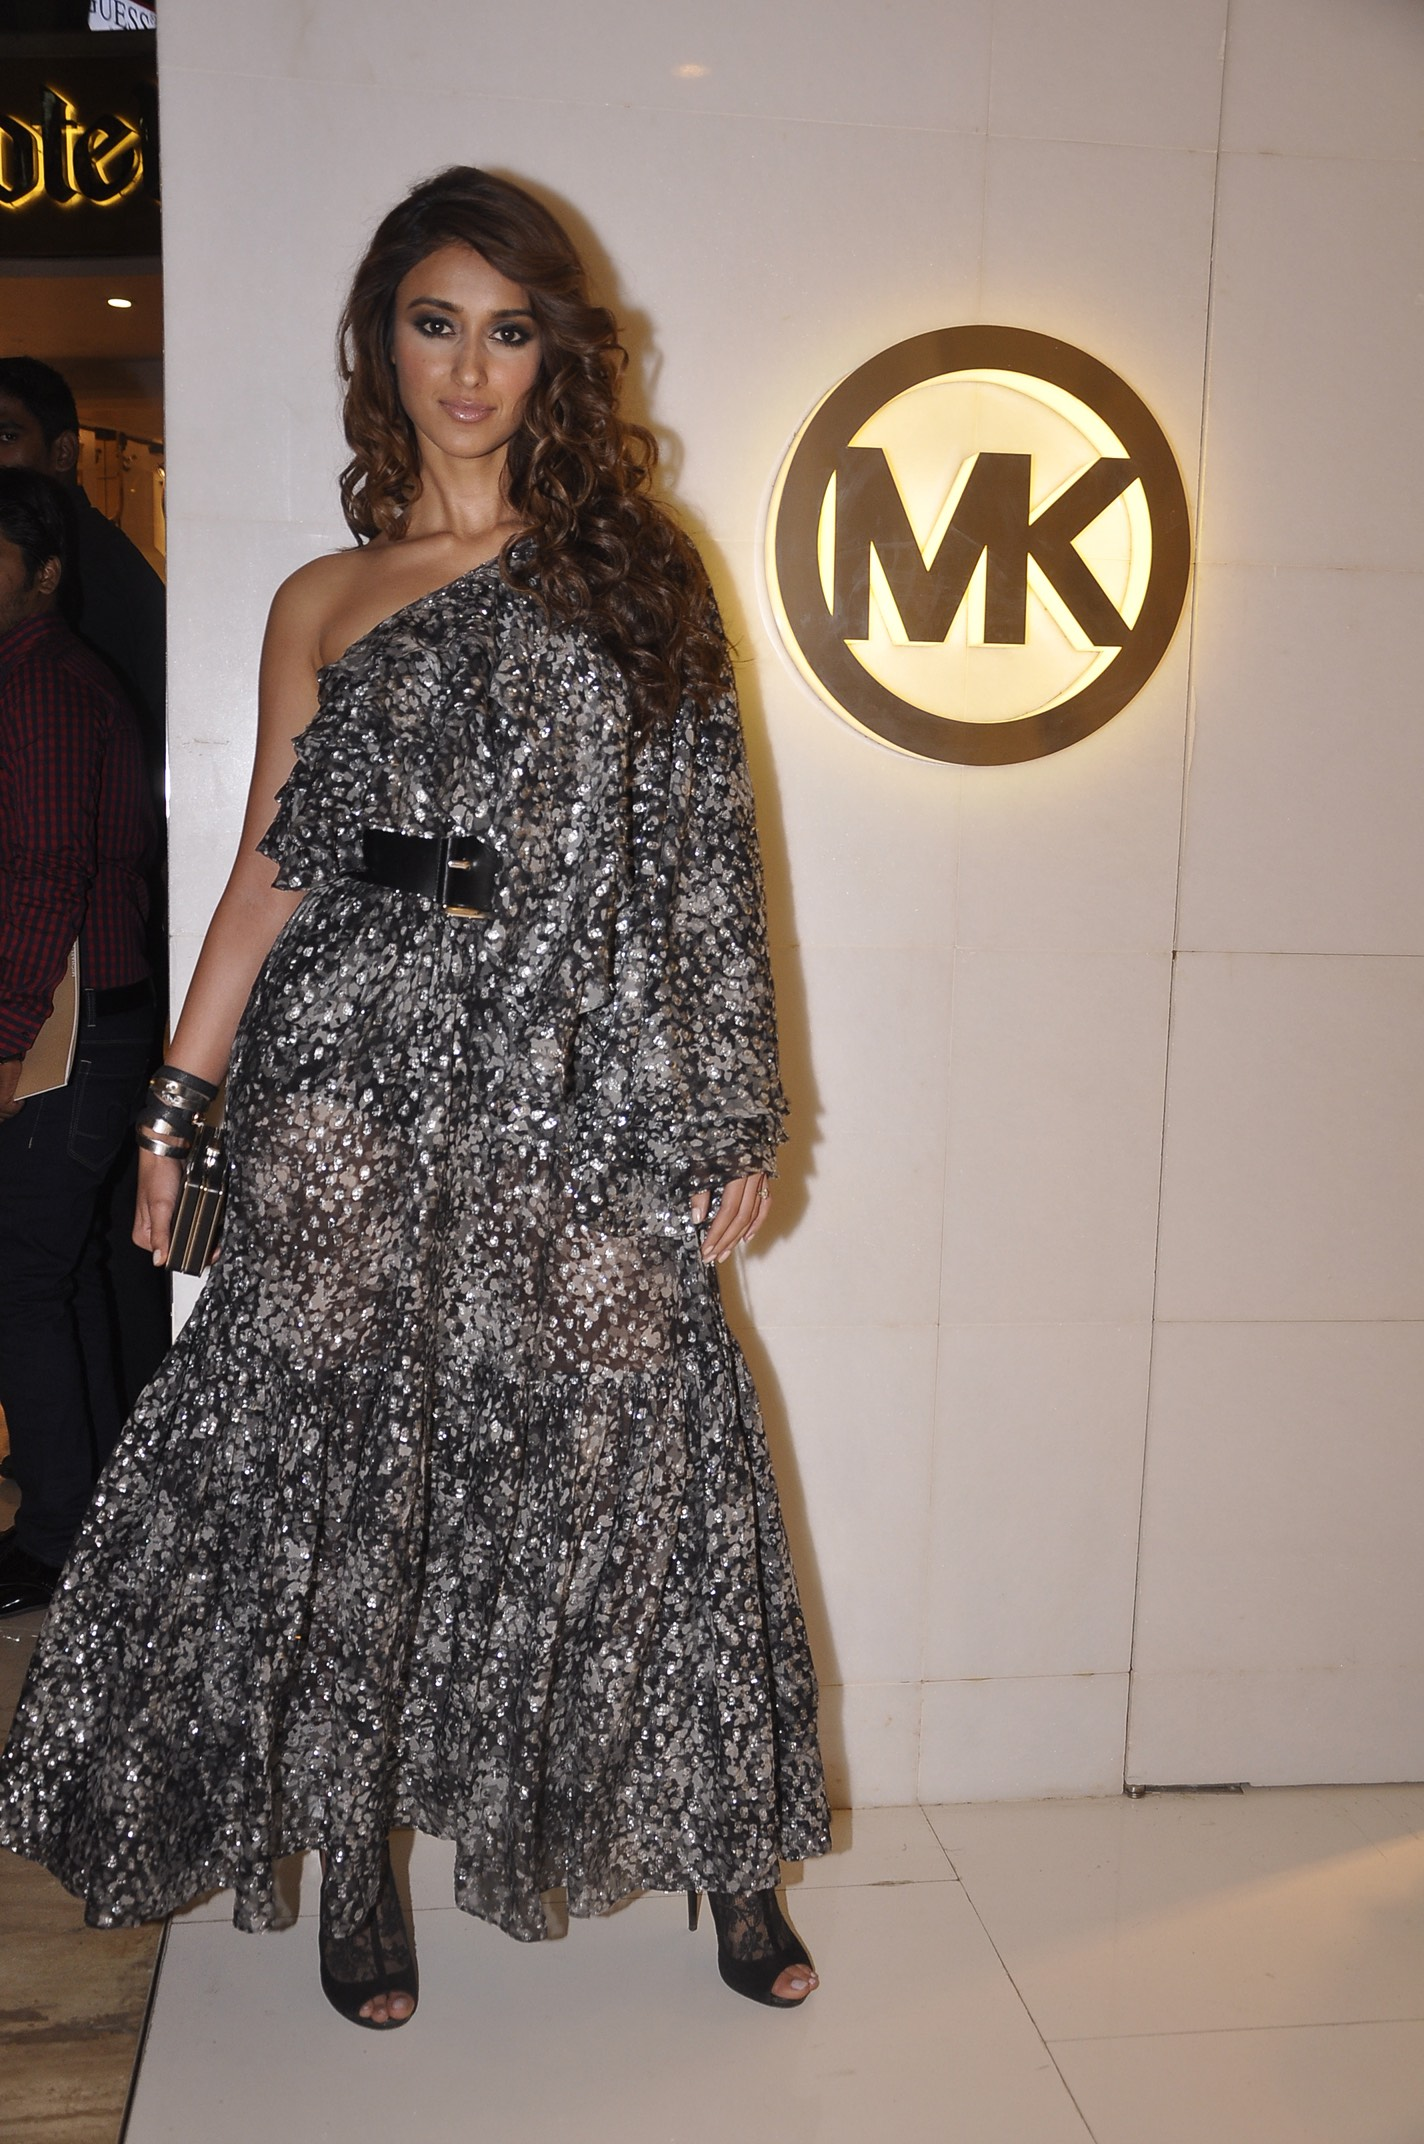 Ileana D'Cruz:    Floral metallic fil coupé Michael Kors dress wing- sleeve top from the Fall 2014 collection and a black MICHAEL Michael Kors Elsie clutch from the Holiday 2015 collection.